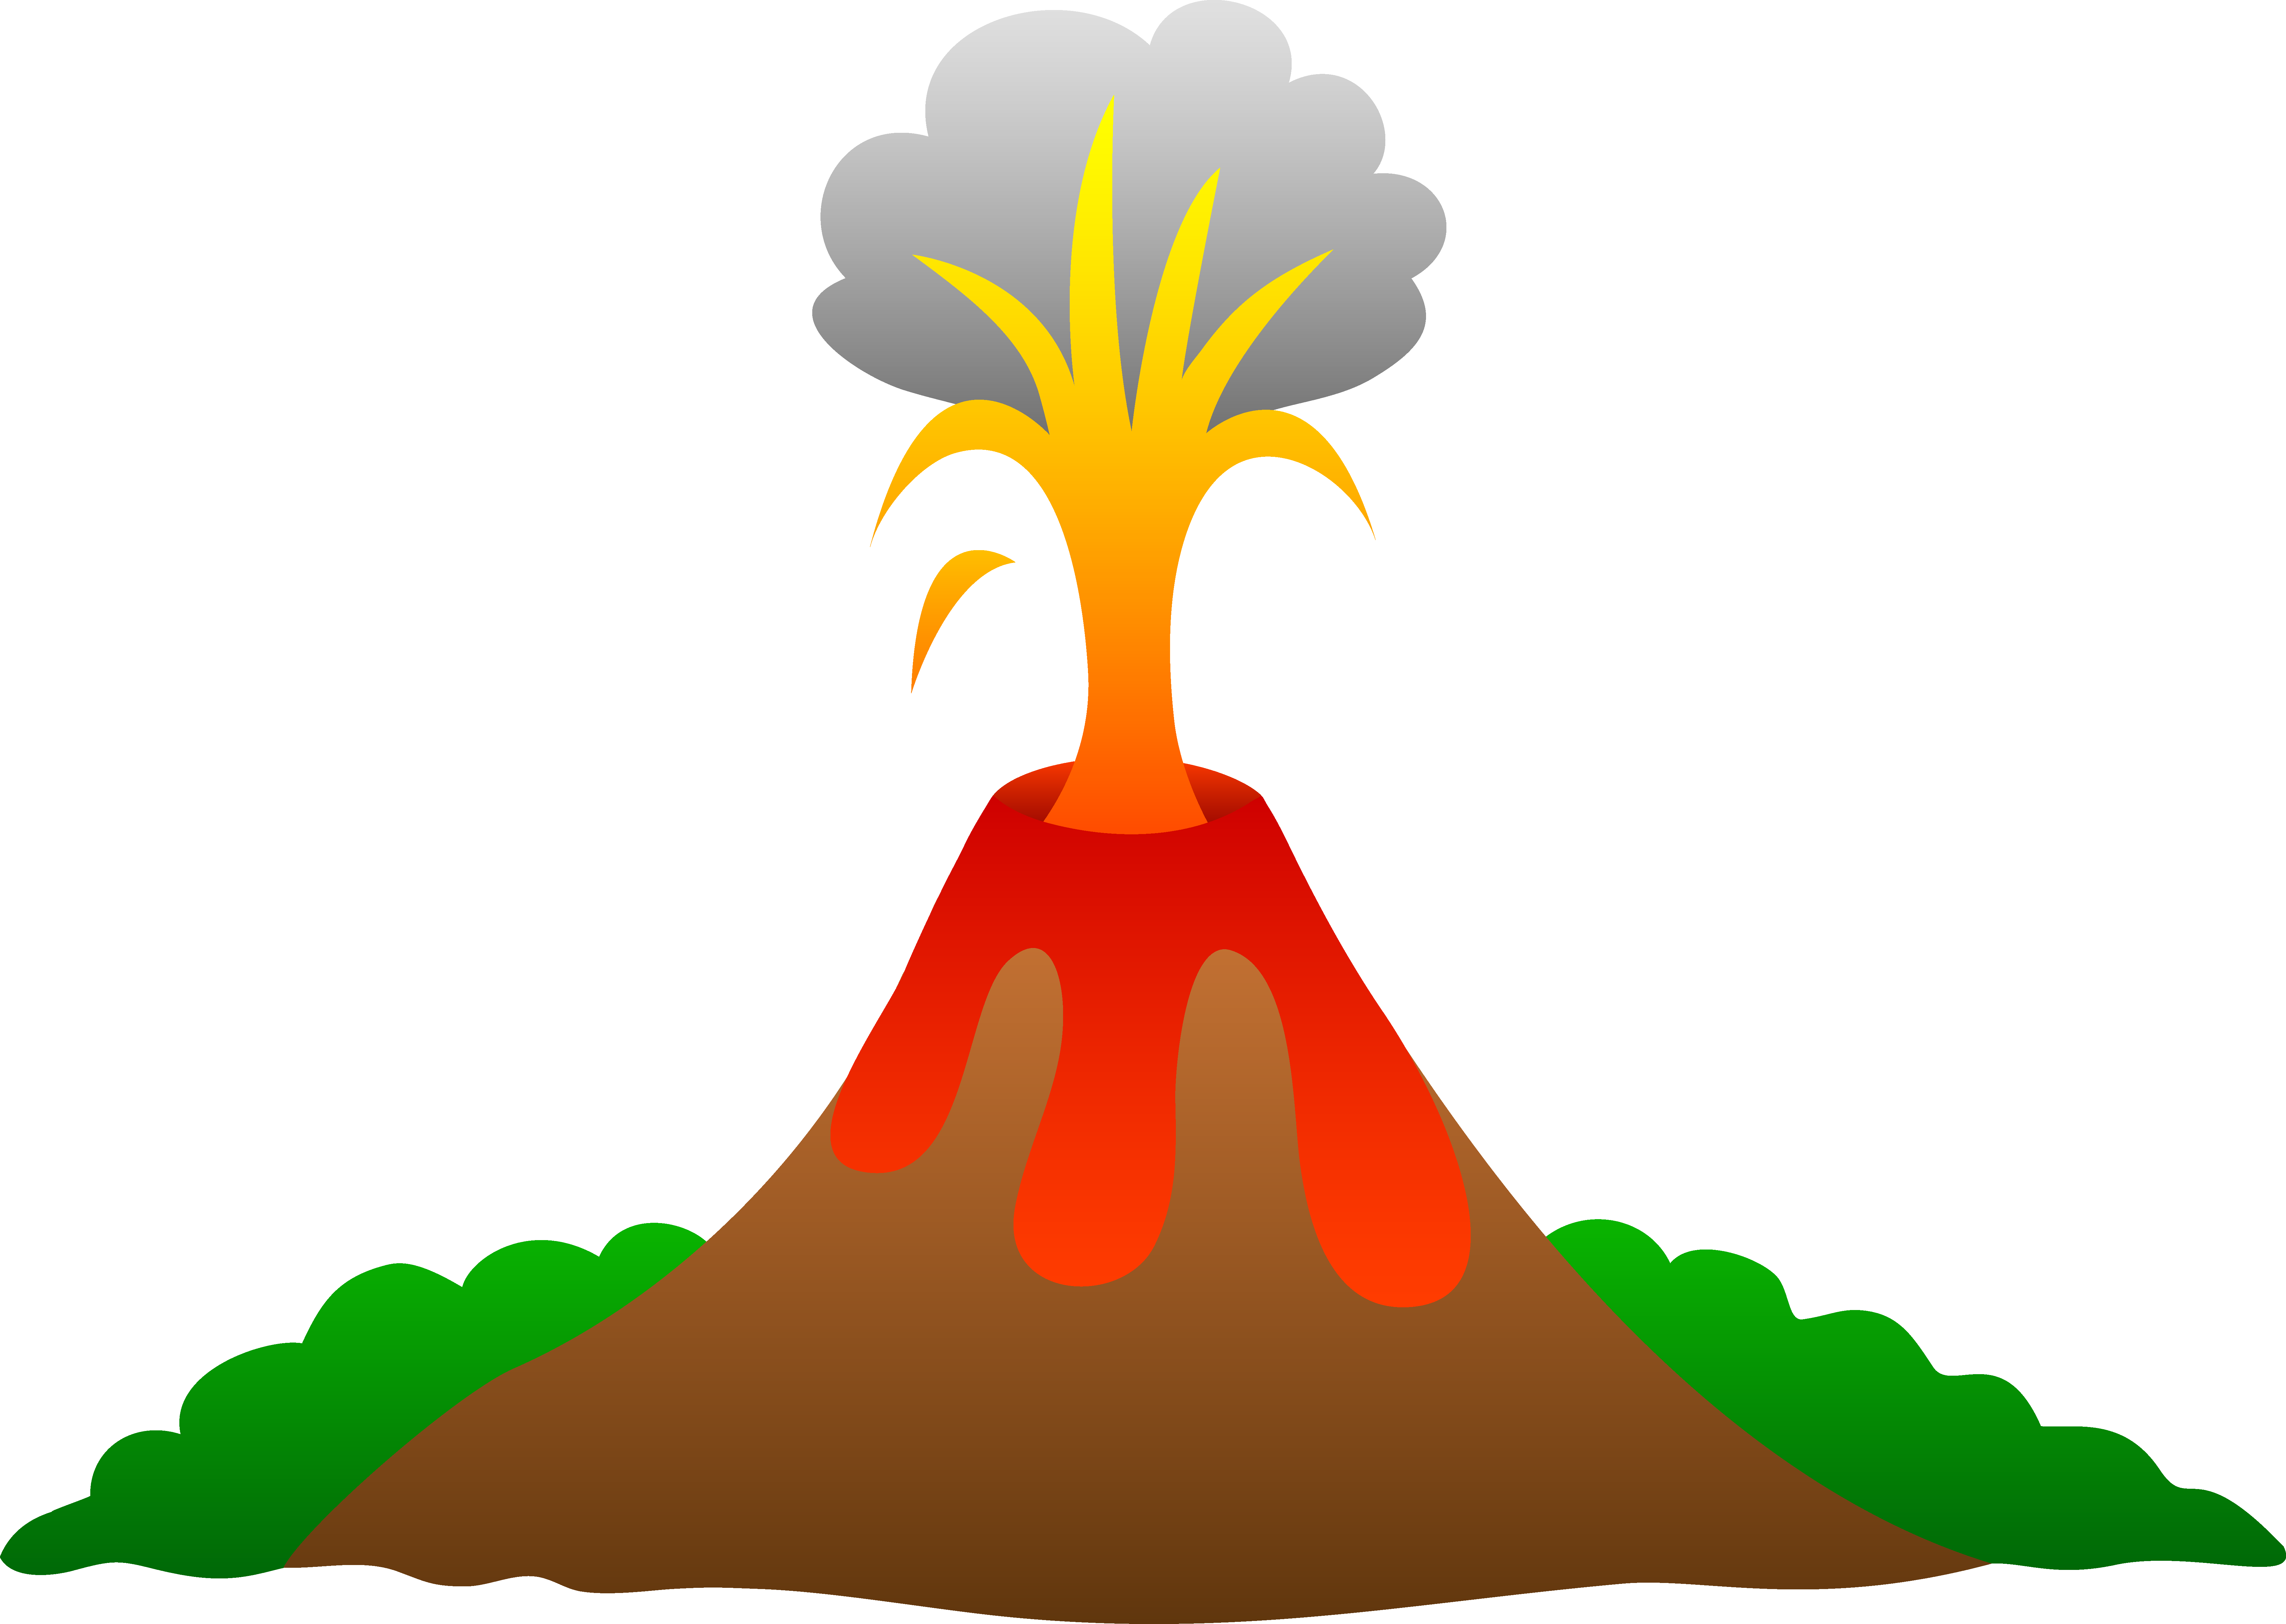 Eruption clipart #3, Download drawings